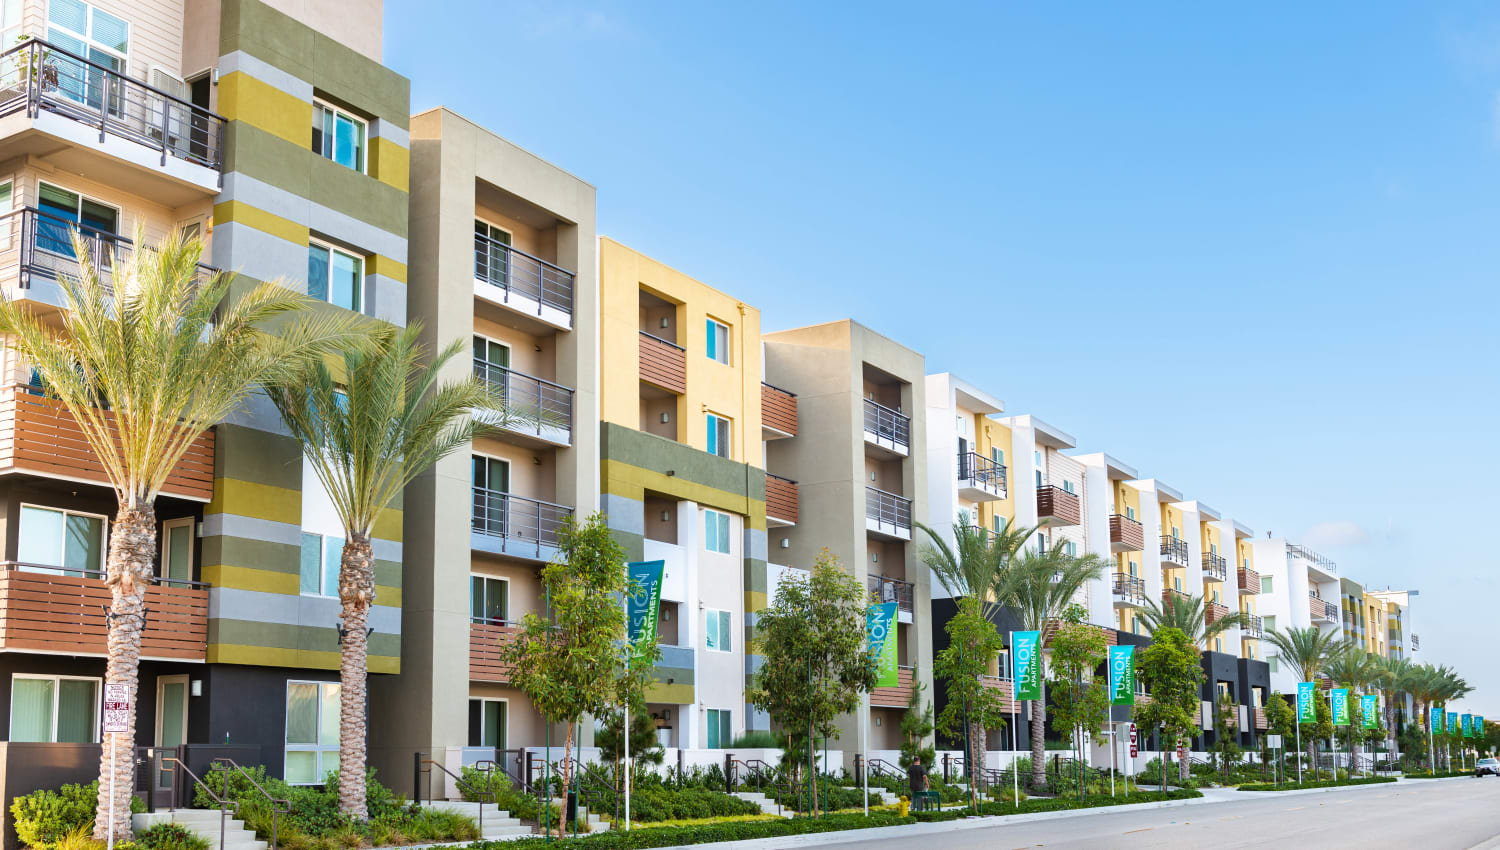 Palm trees outside resident buildings at Fusion Apartments in Irvine, California